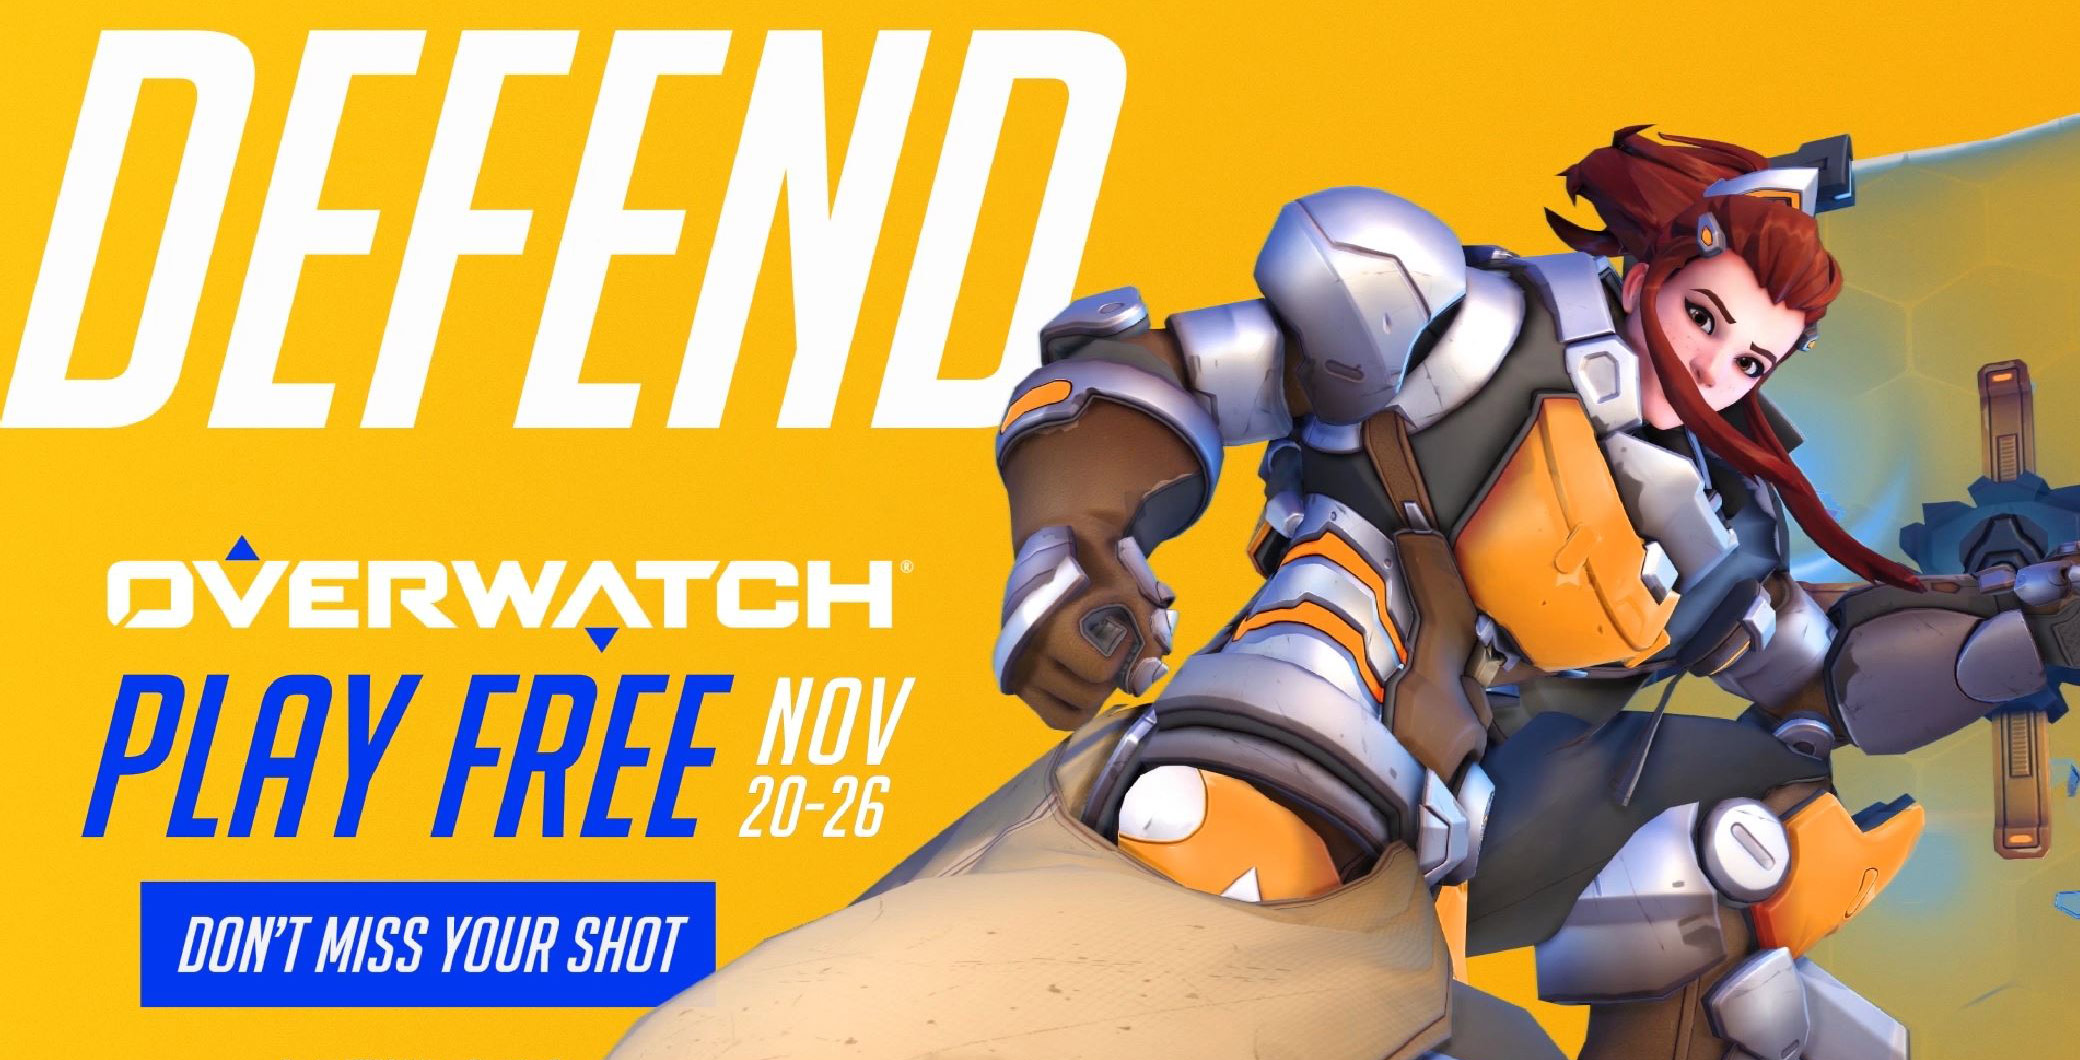 Overwatch free trial runs from November 20th to the 26th